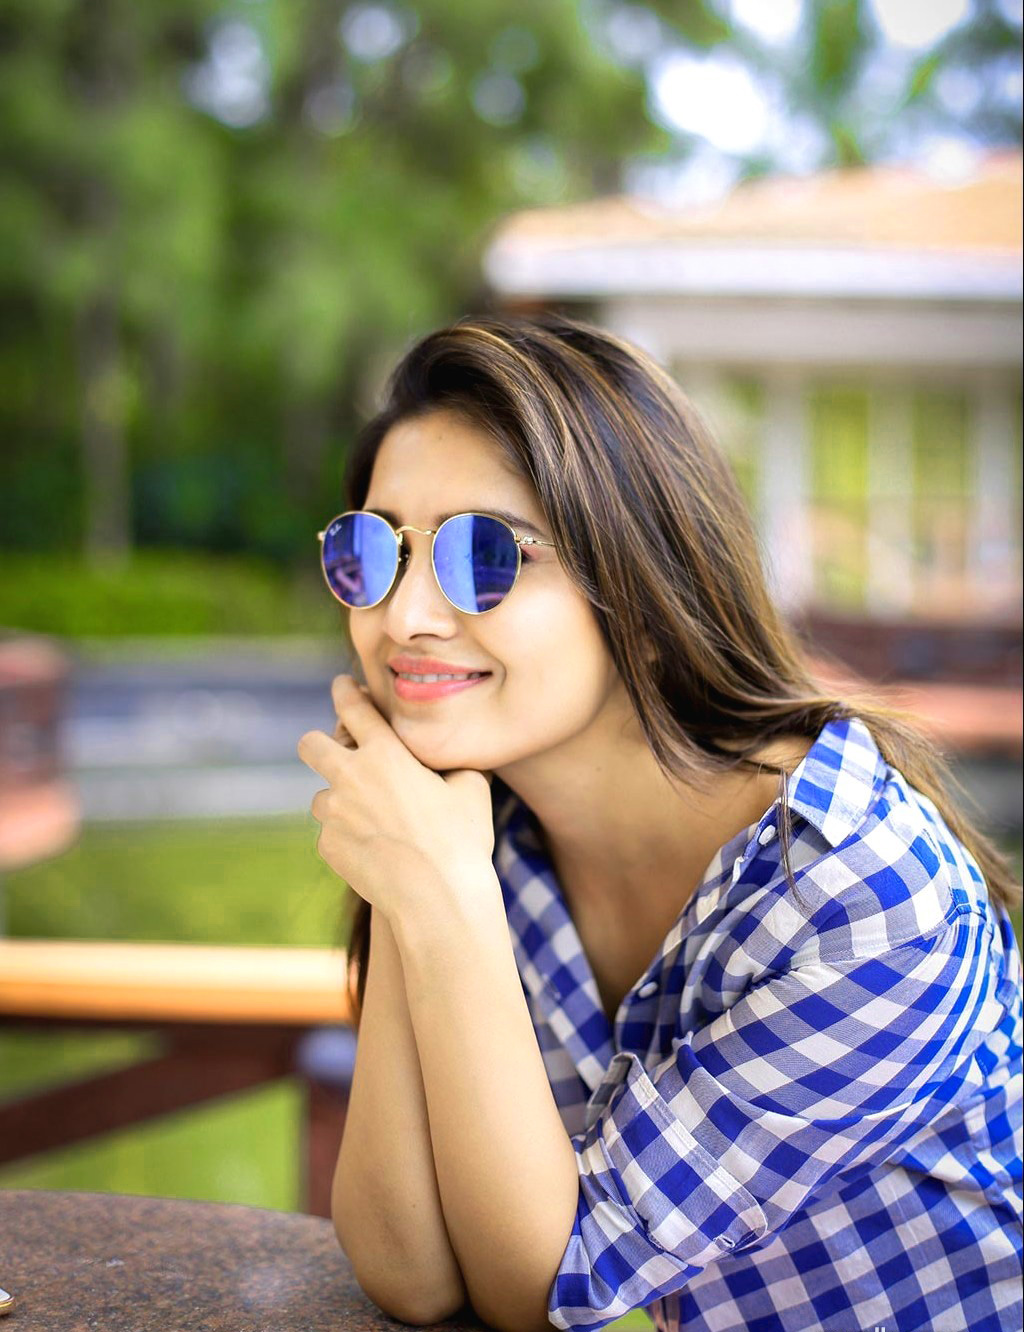 TV ACTRESS IMAGES PICS PICTURES HD DOWNLOAD